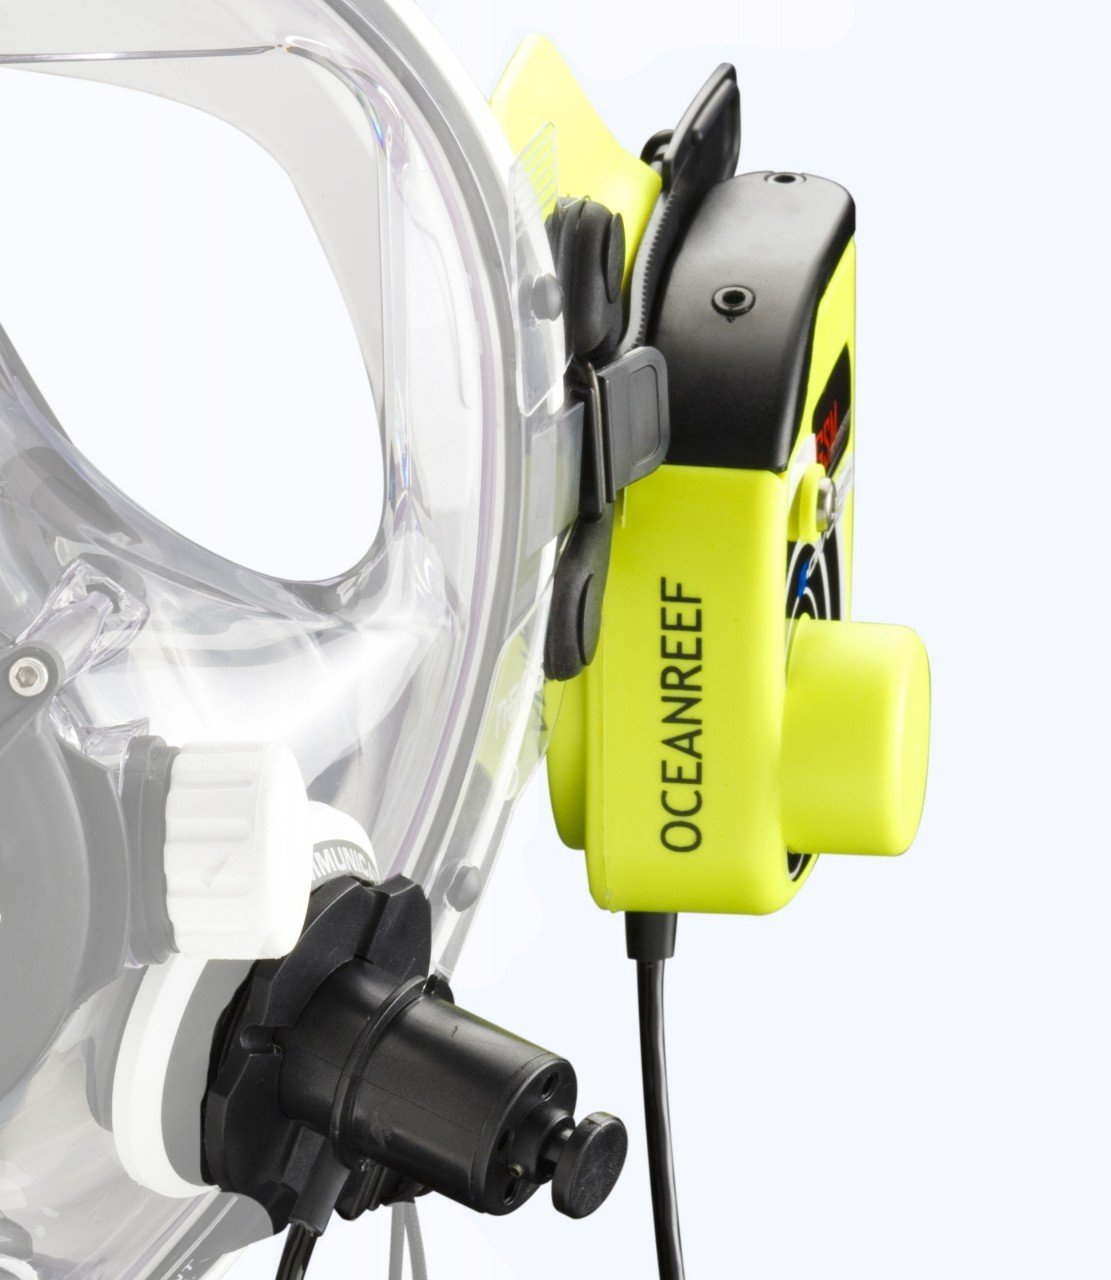 Ocean Reef GSM G Divers Communication System Yellow (OR033109) by Ocean Reef (Image #1)